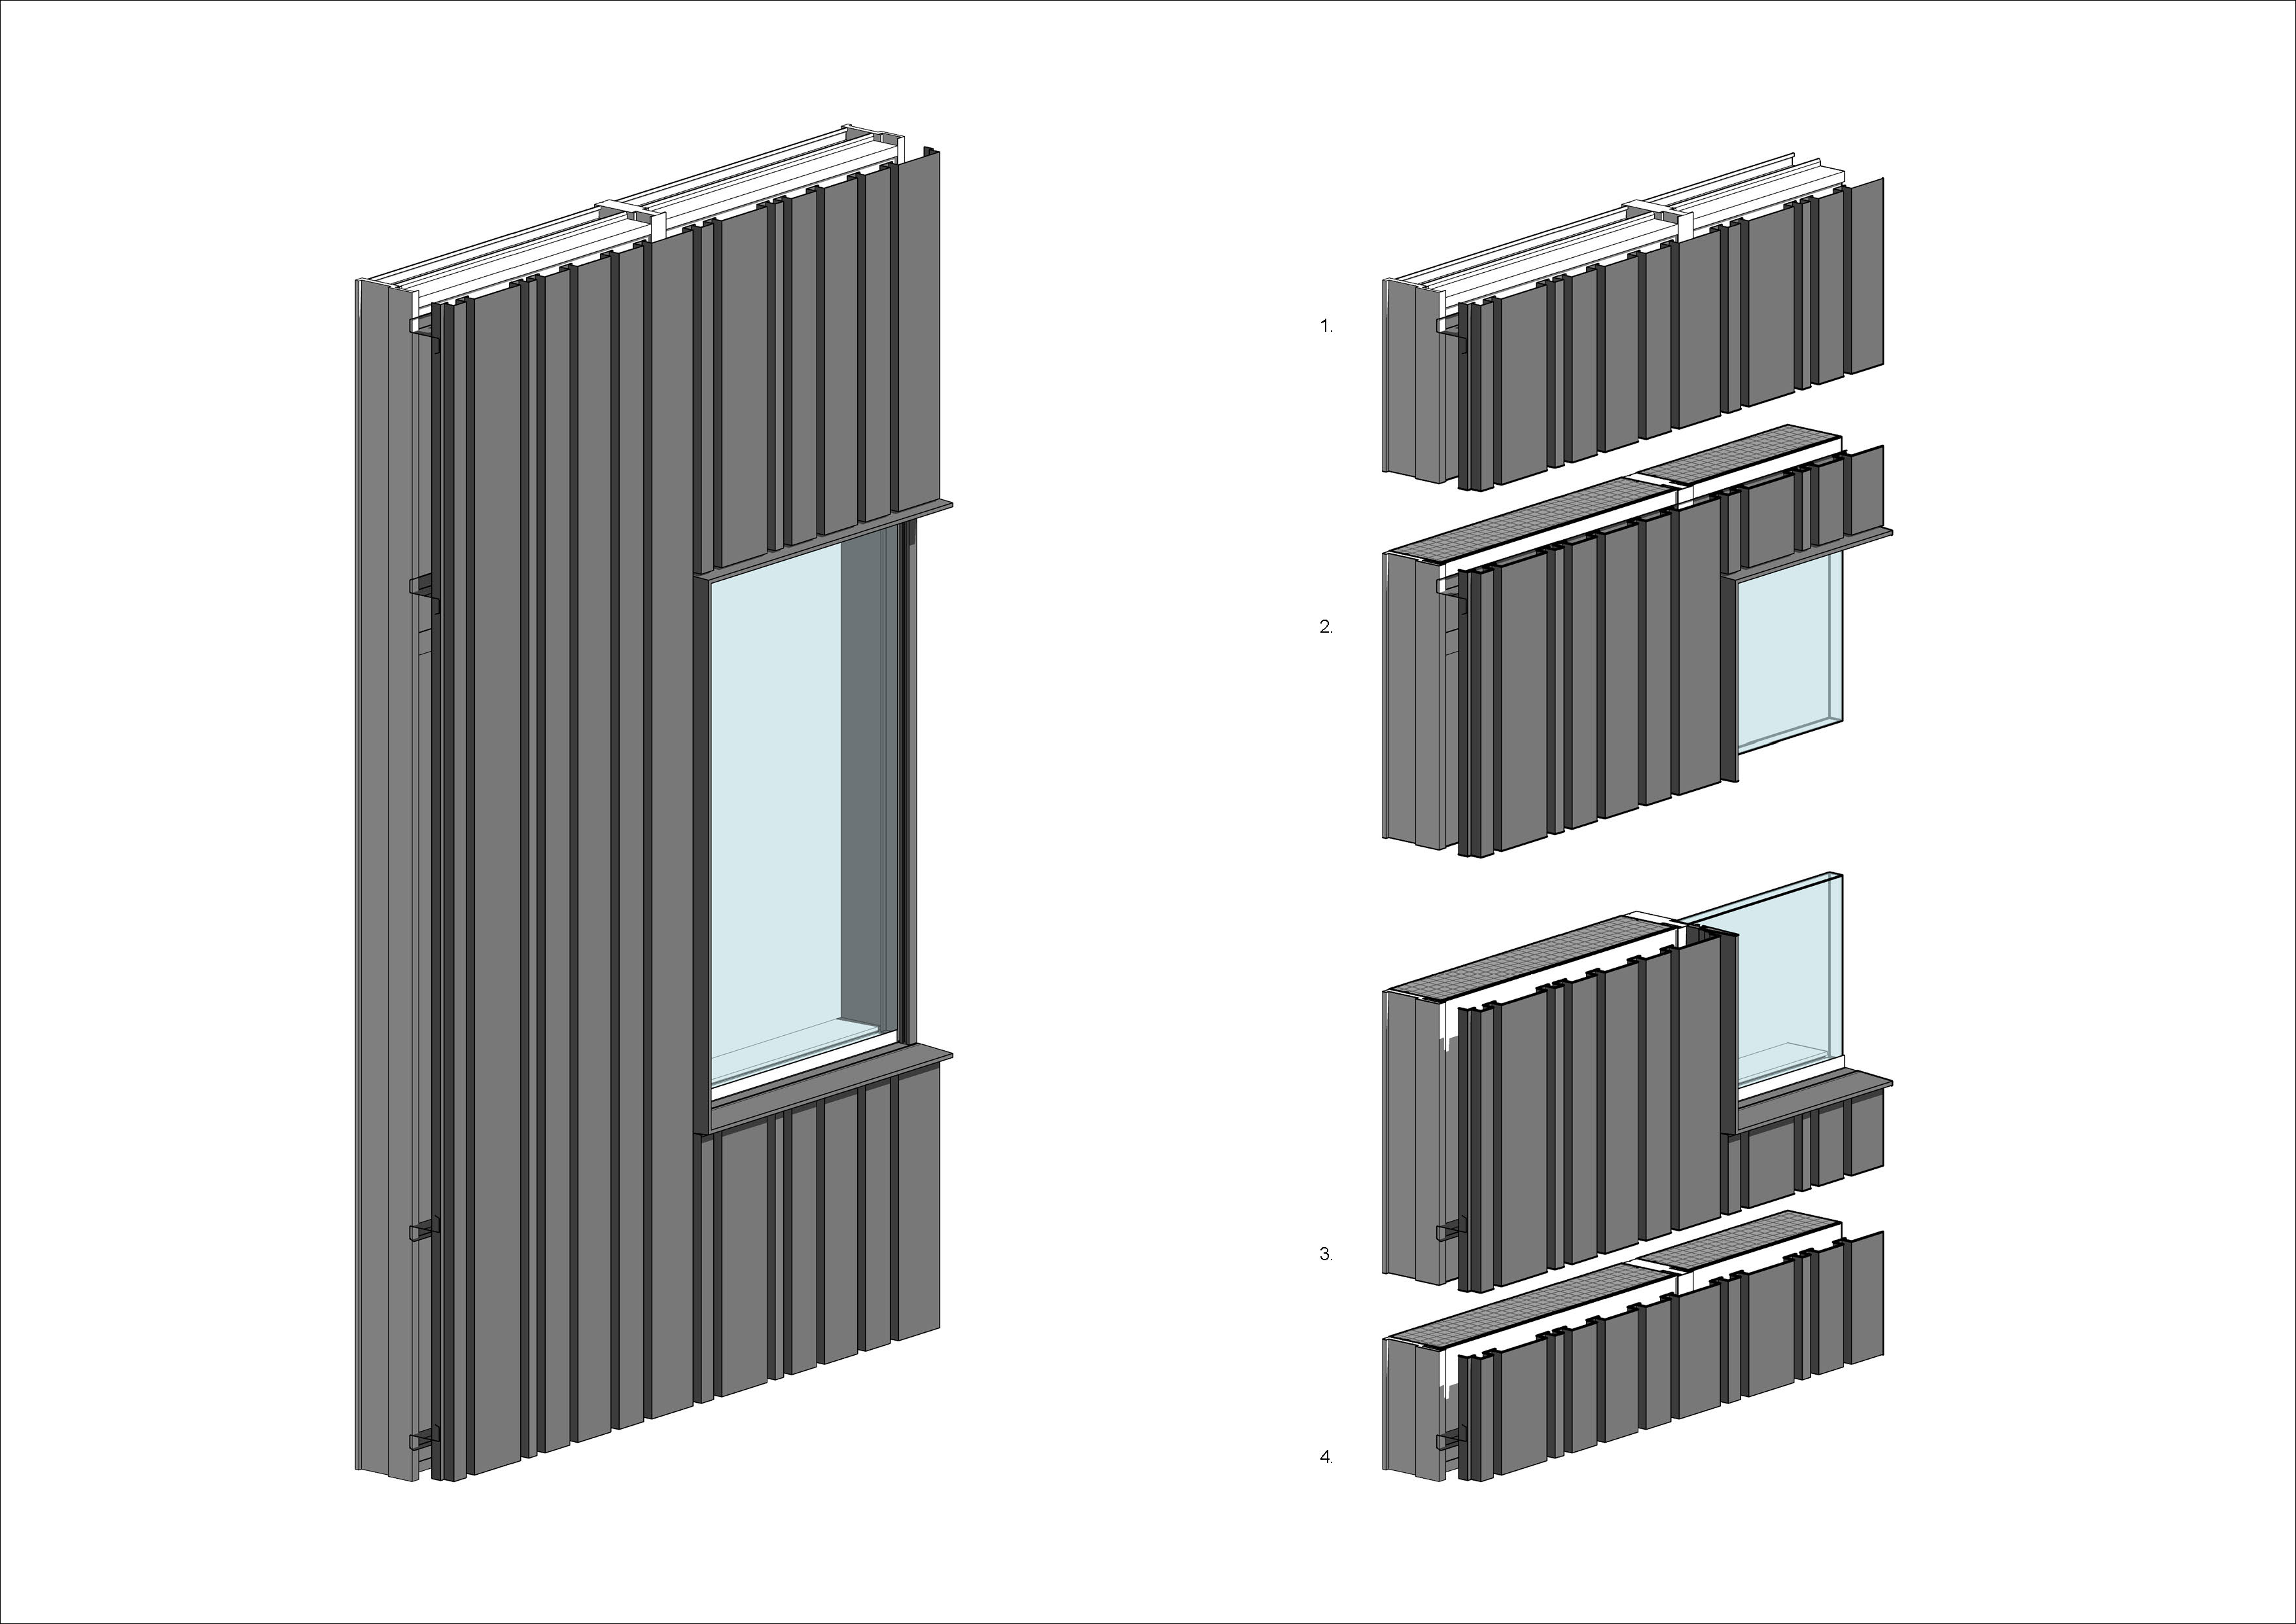 curtain wall panel | Digital story of an architect